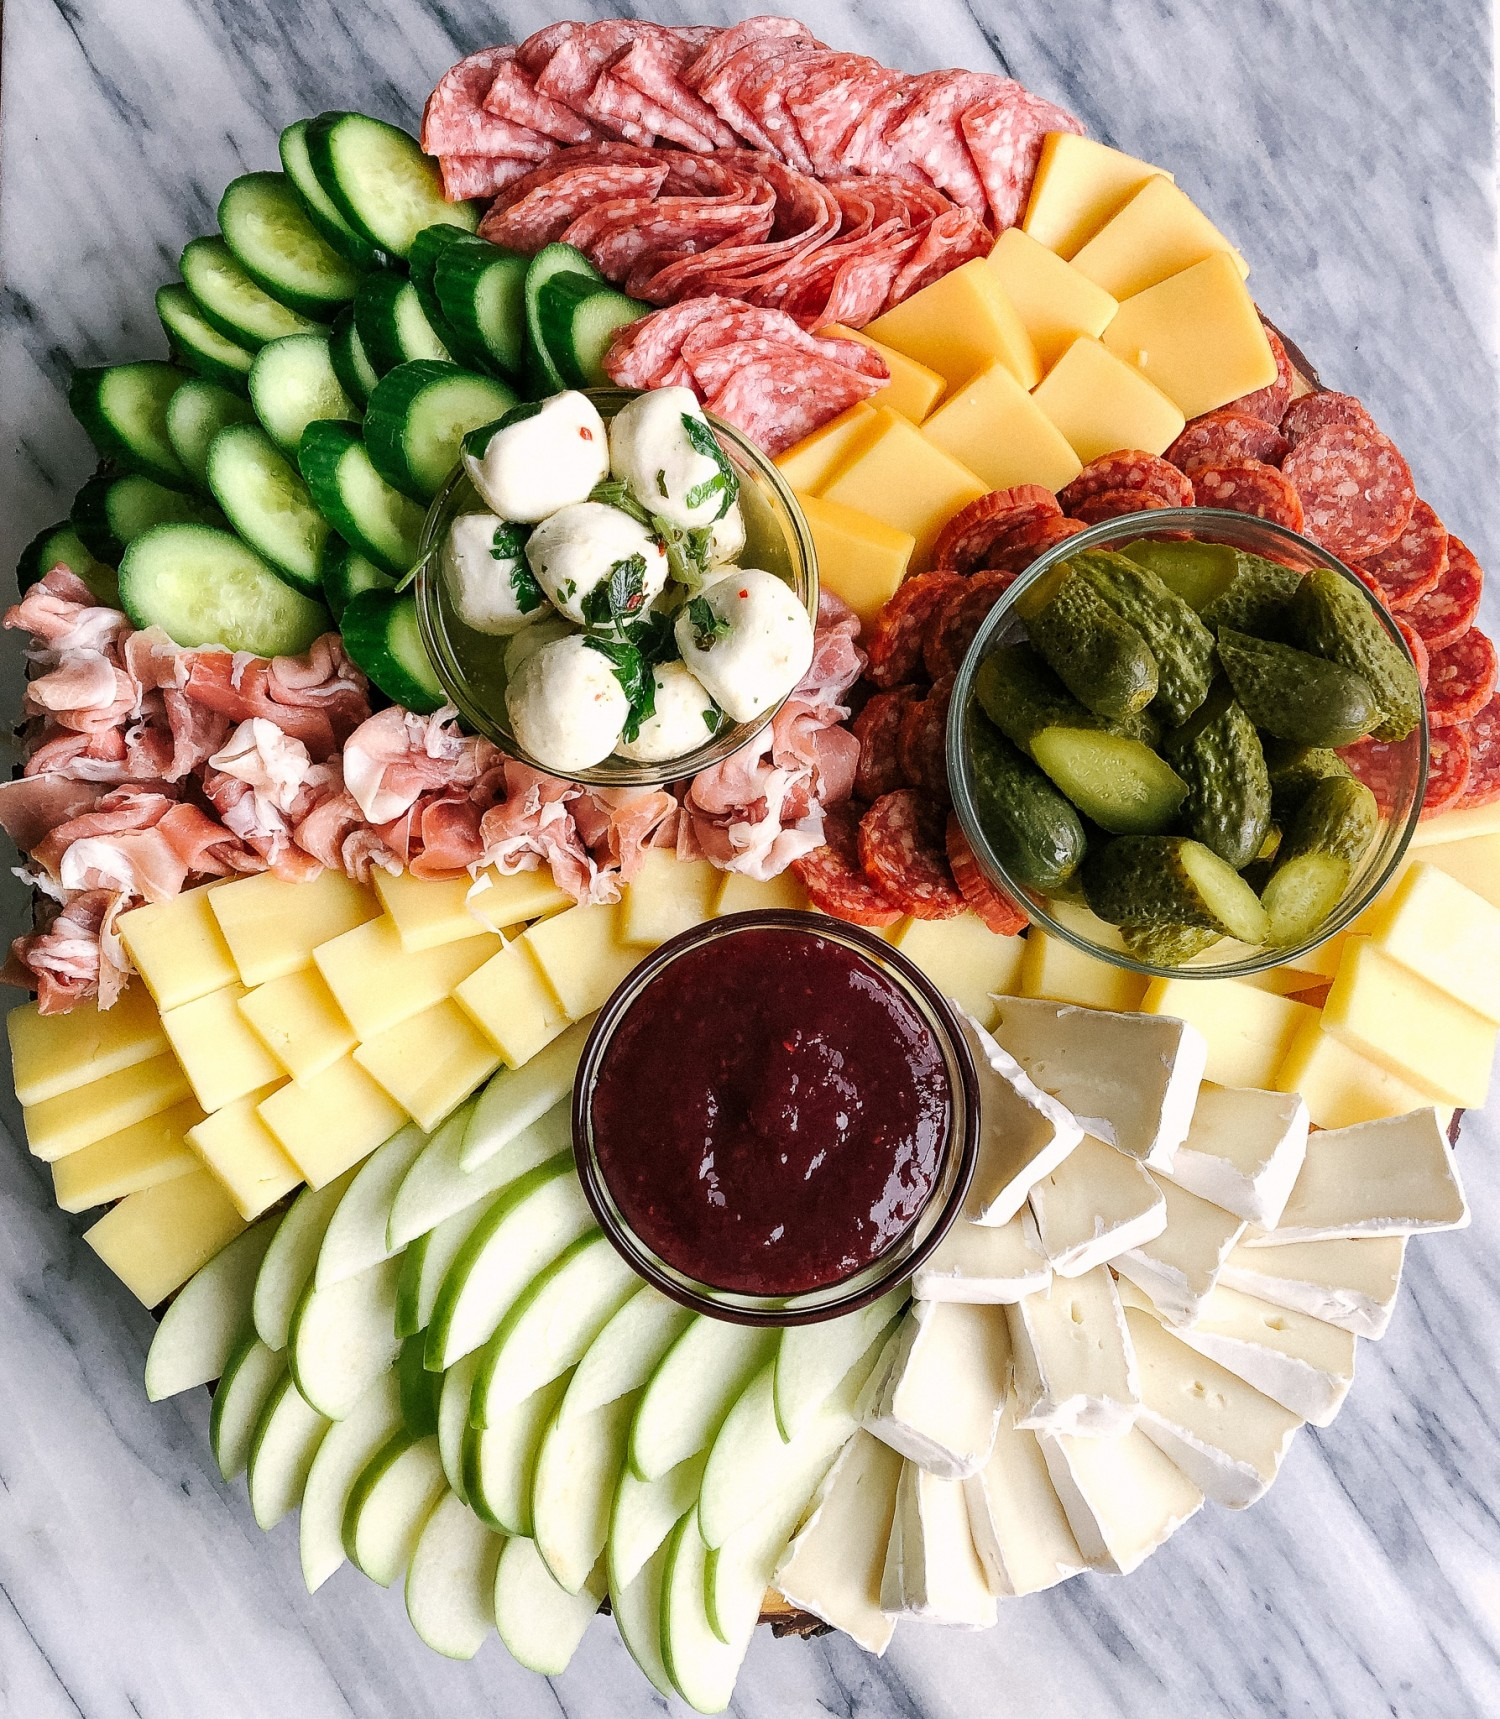 Above view of a colorful charcuterie board for a party